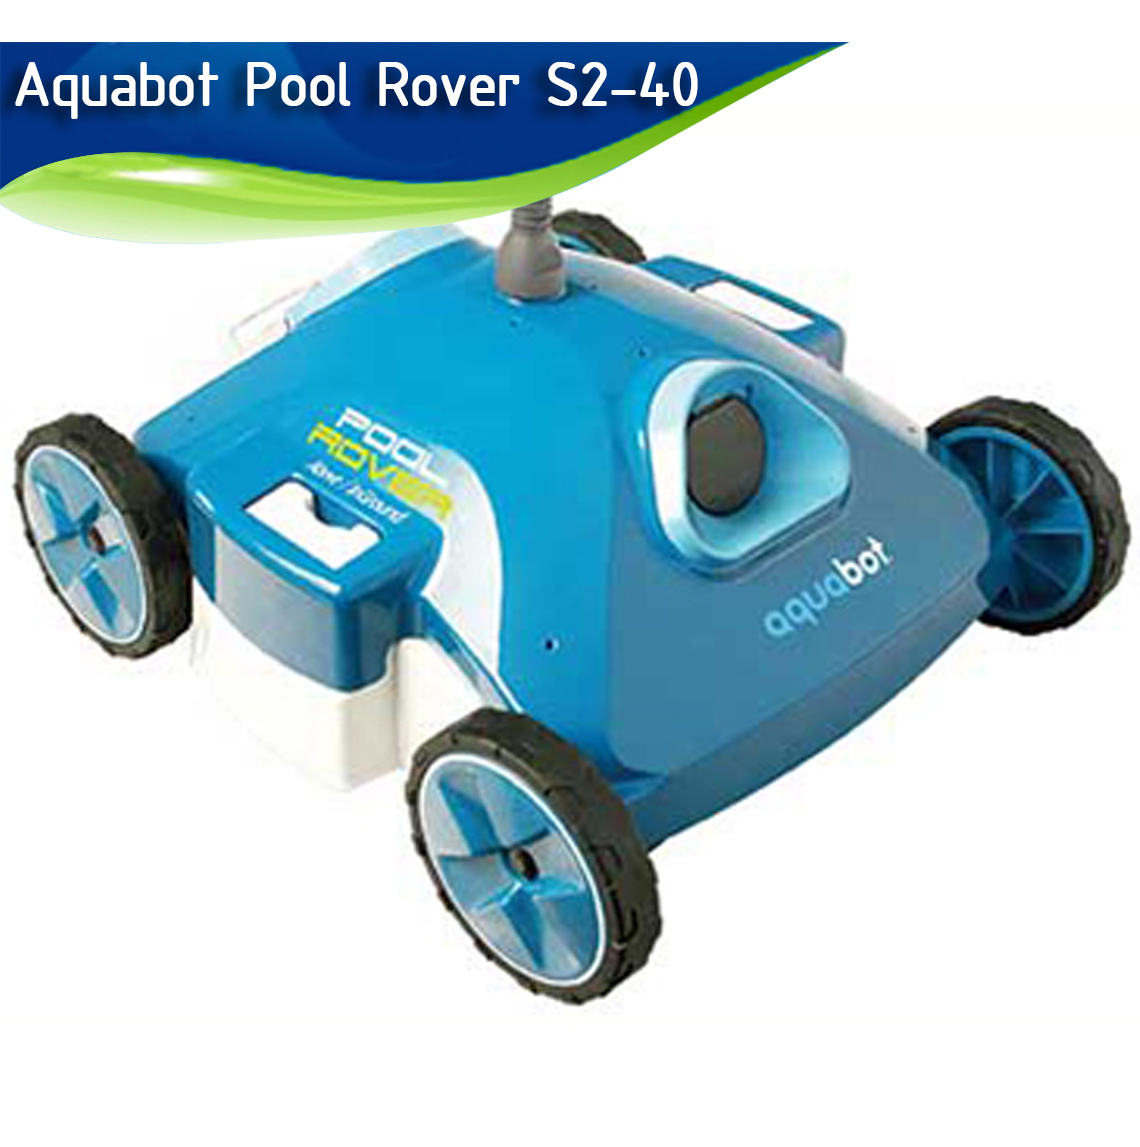 Aquabot Pool Rover S2-40 REVIEW